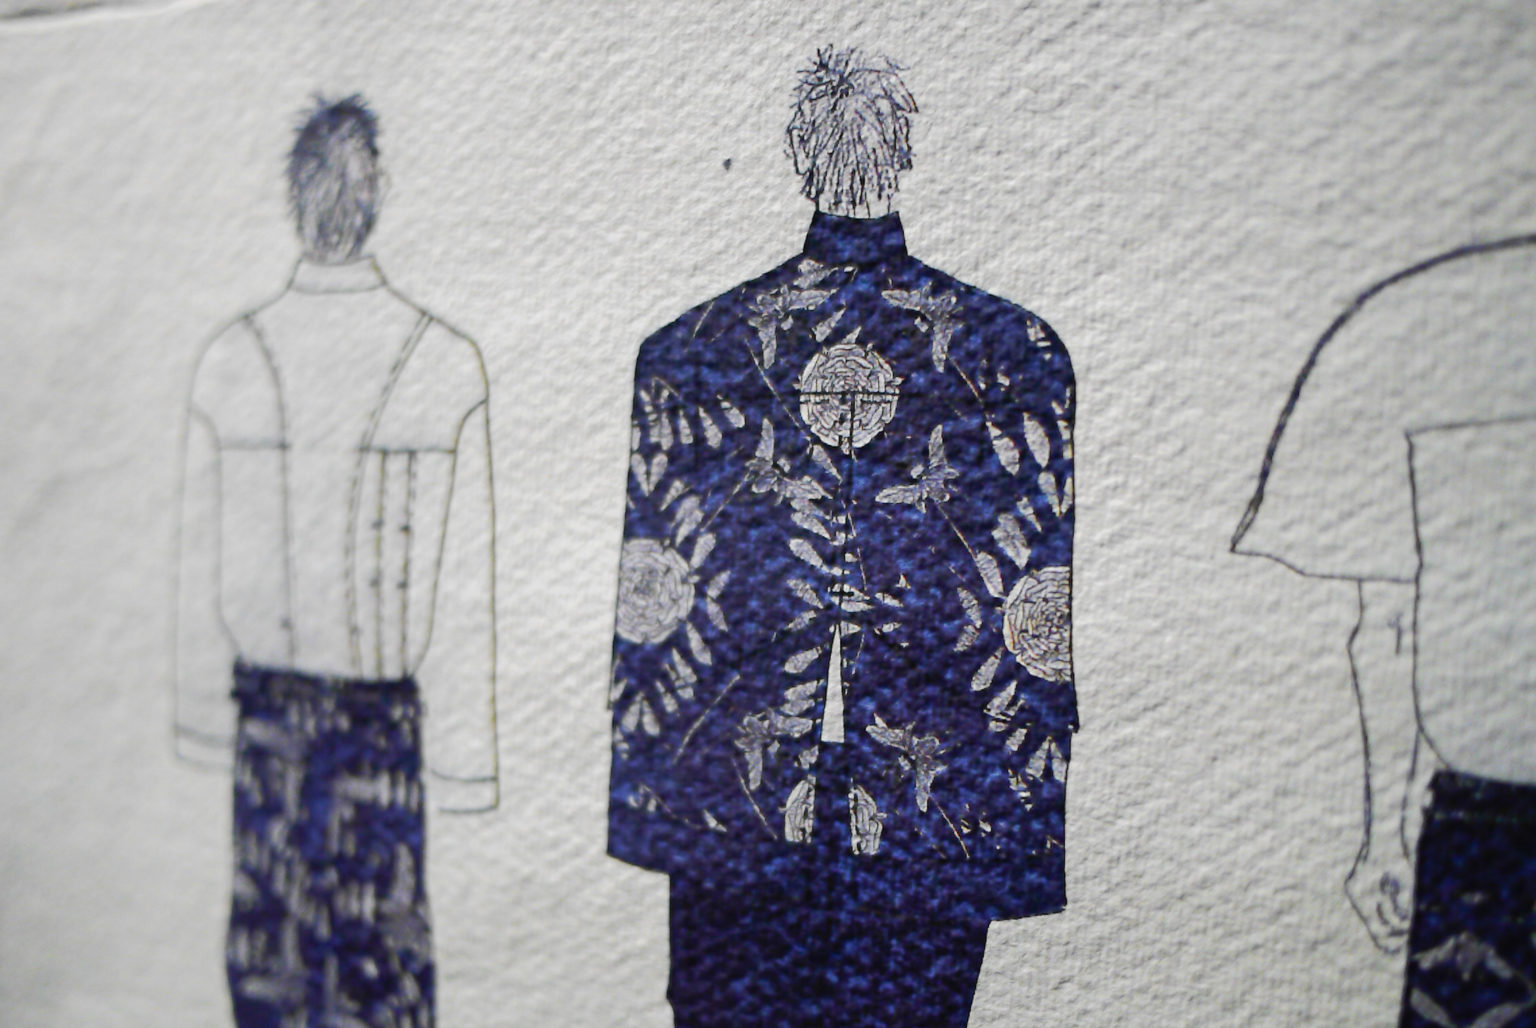 The Kingpins x Ravensbourne Innovation Project tasked second year fashion students at the London university with designing a sustainable denim brand in just 10 weeks.